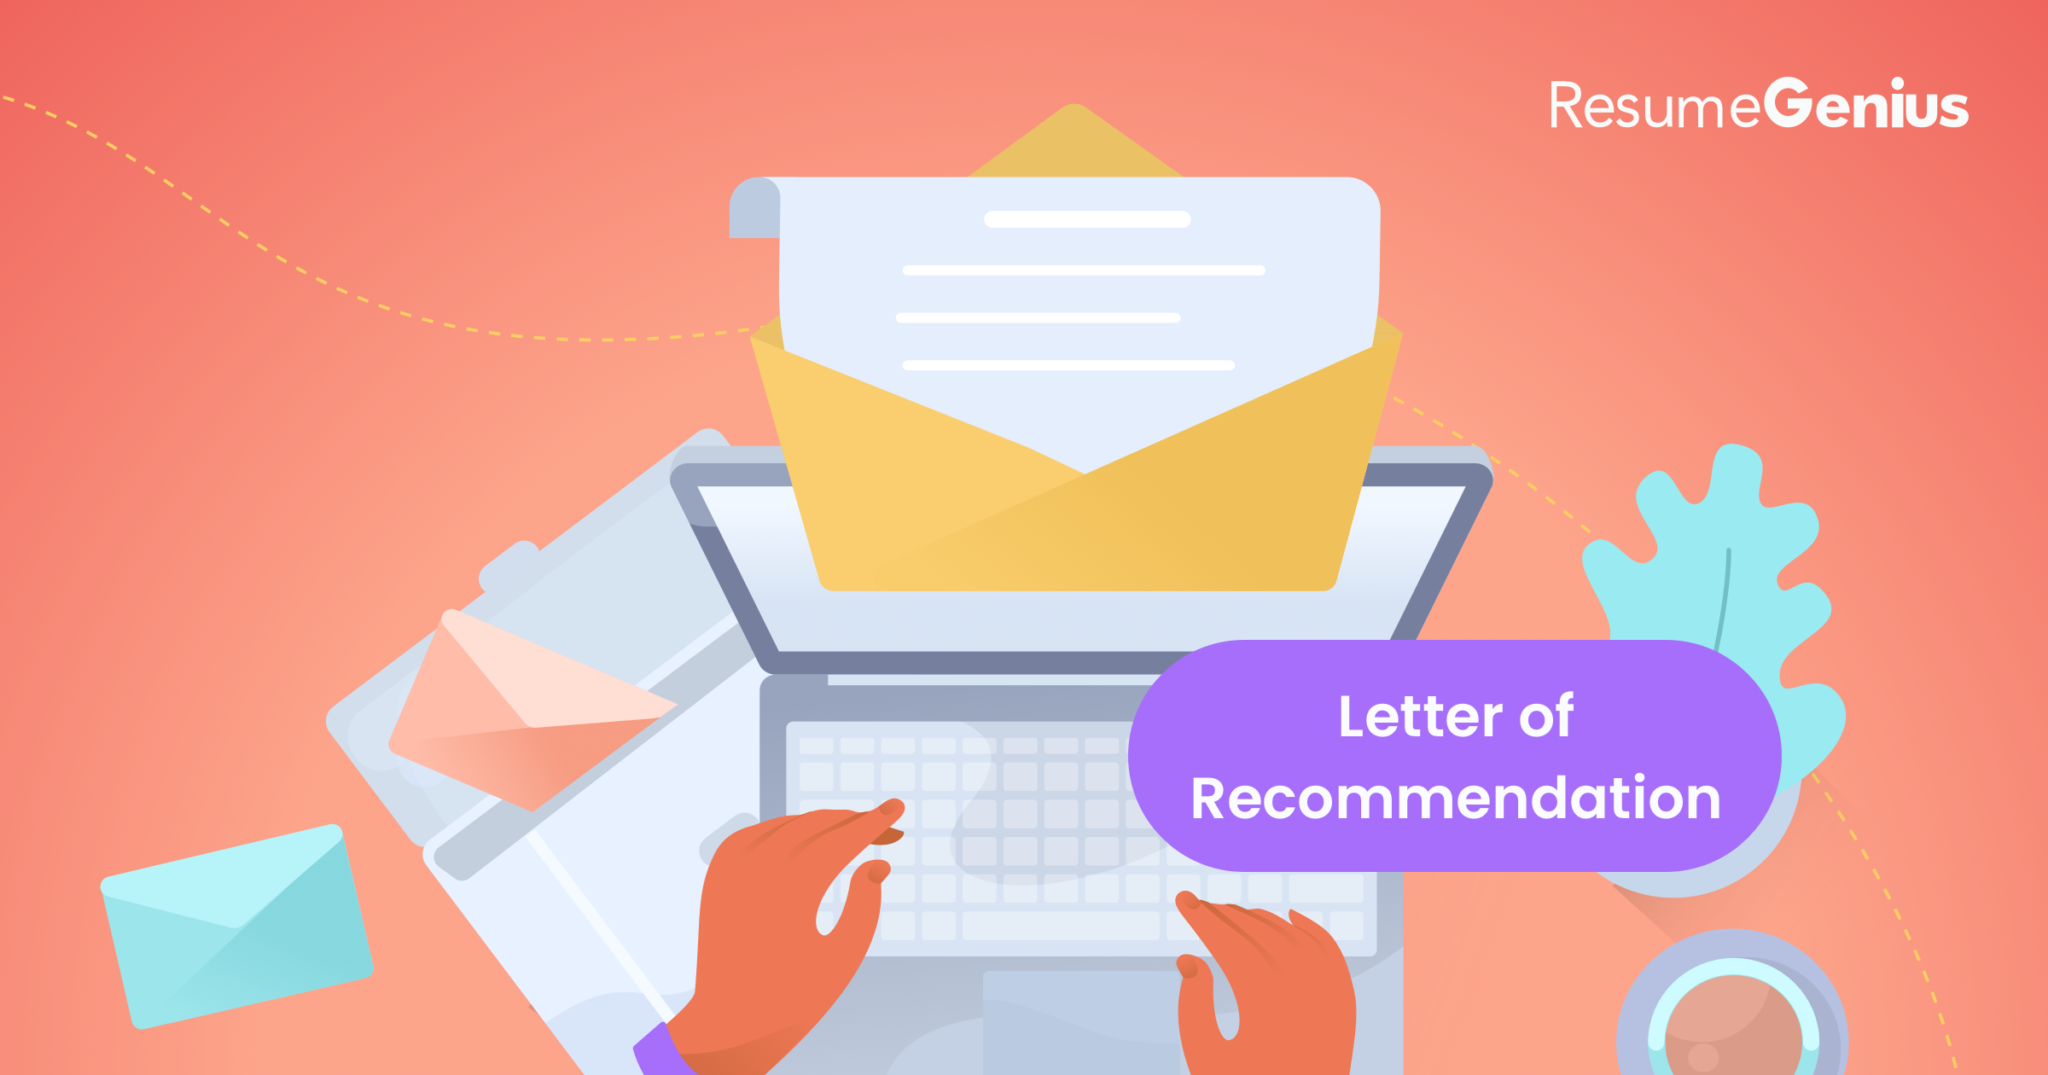 Letter of Recommendation Guide | 8 Samples & Templates | RG